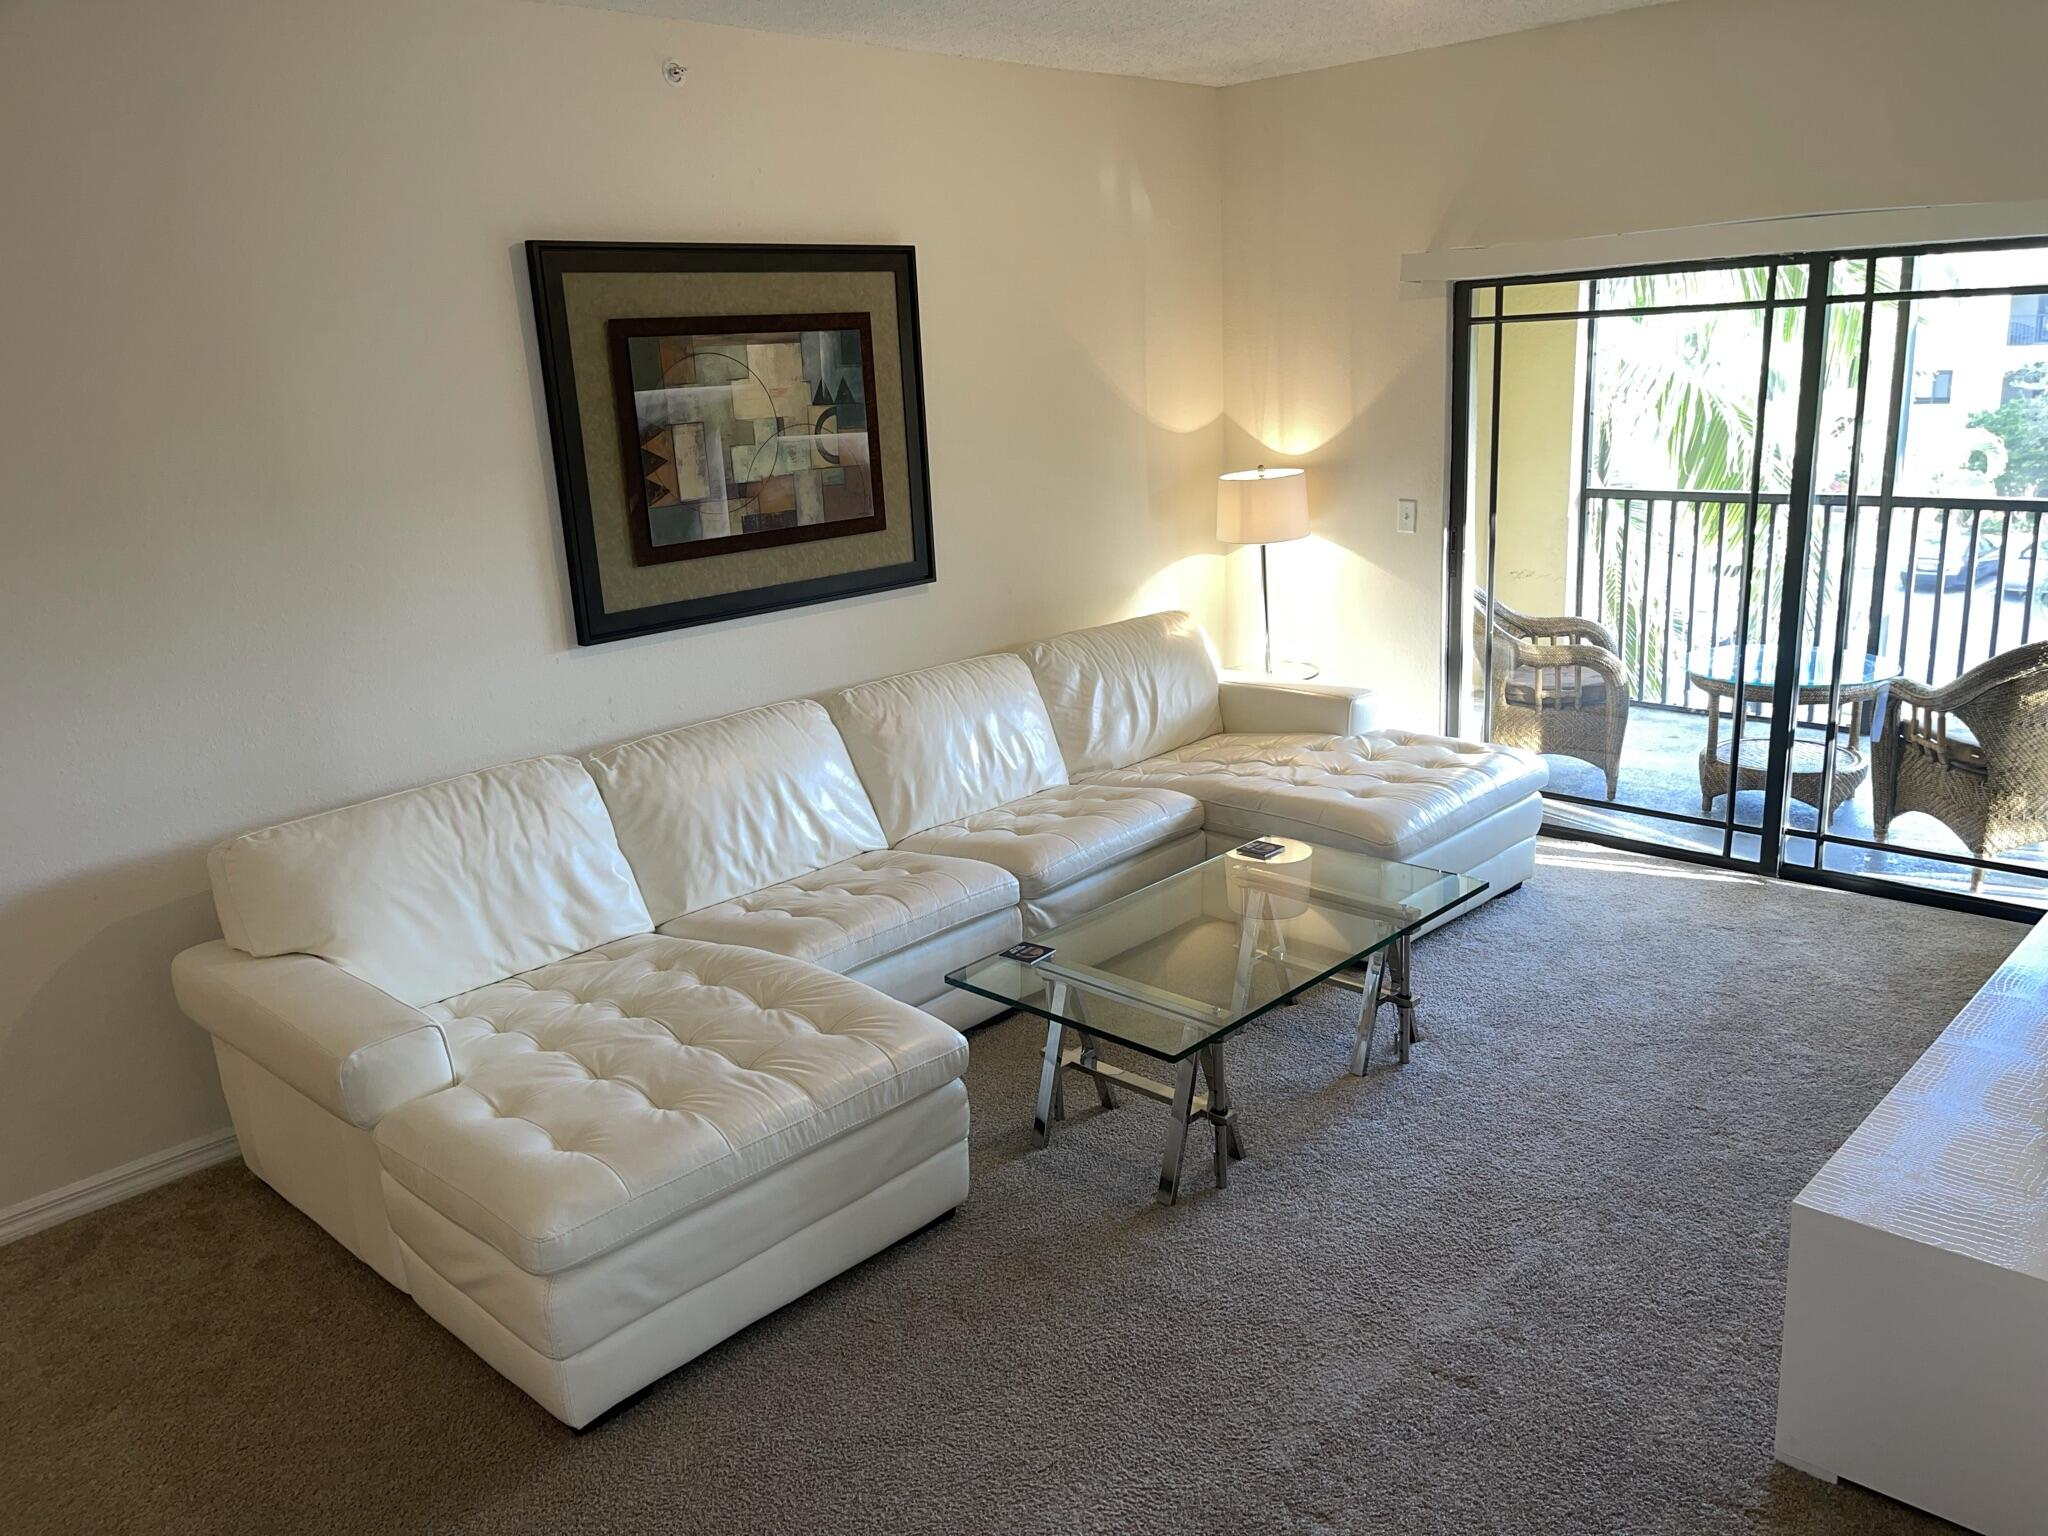 Beautifully Furnished 3 Bedroom 2 Bath Condo in a Gated Community in Palm Beach Gardens. Call Akin to view this property.